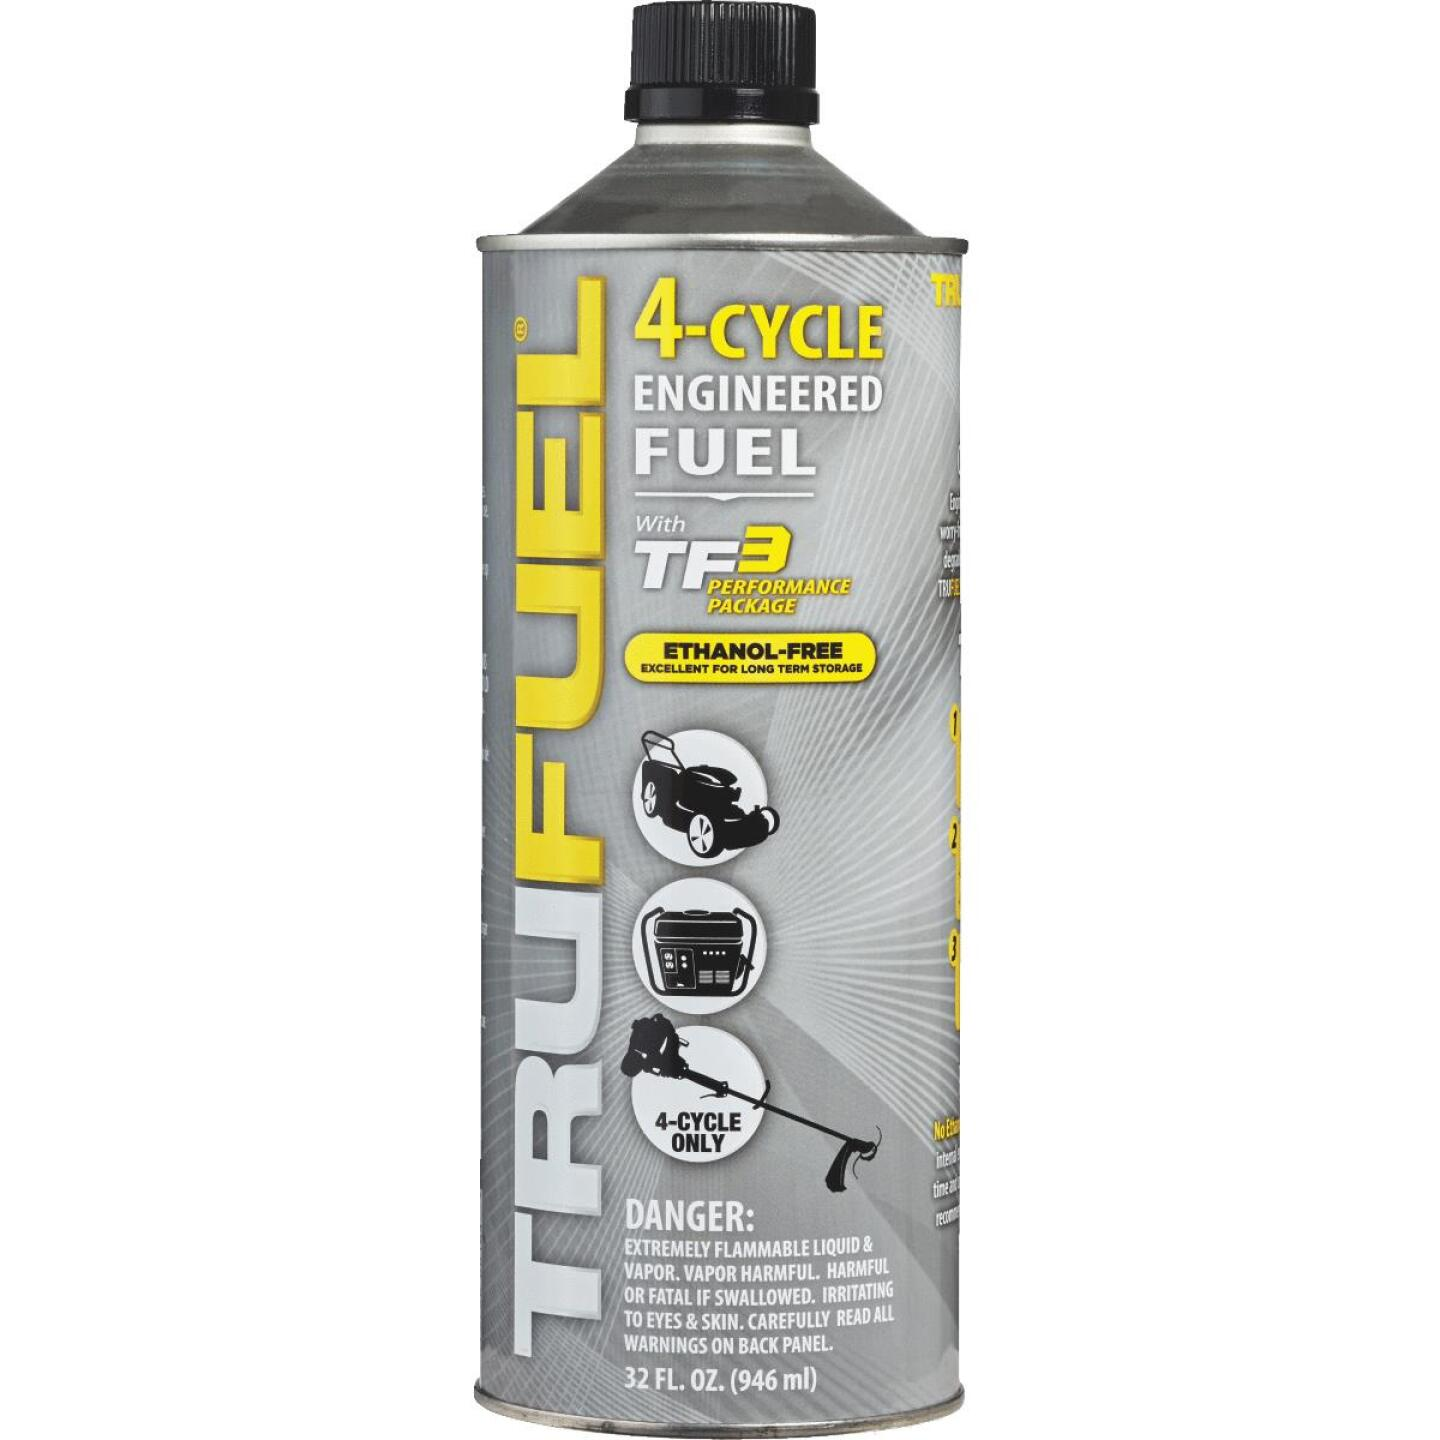 TruFuel 32 Oz. Ethanol-Free Small Engine 4-Cycle Fuel Image 2